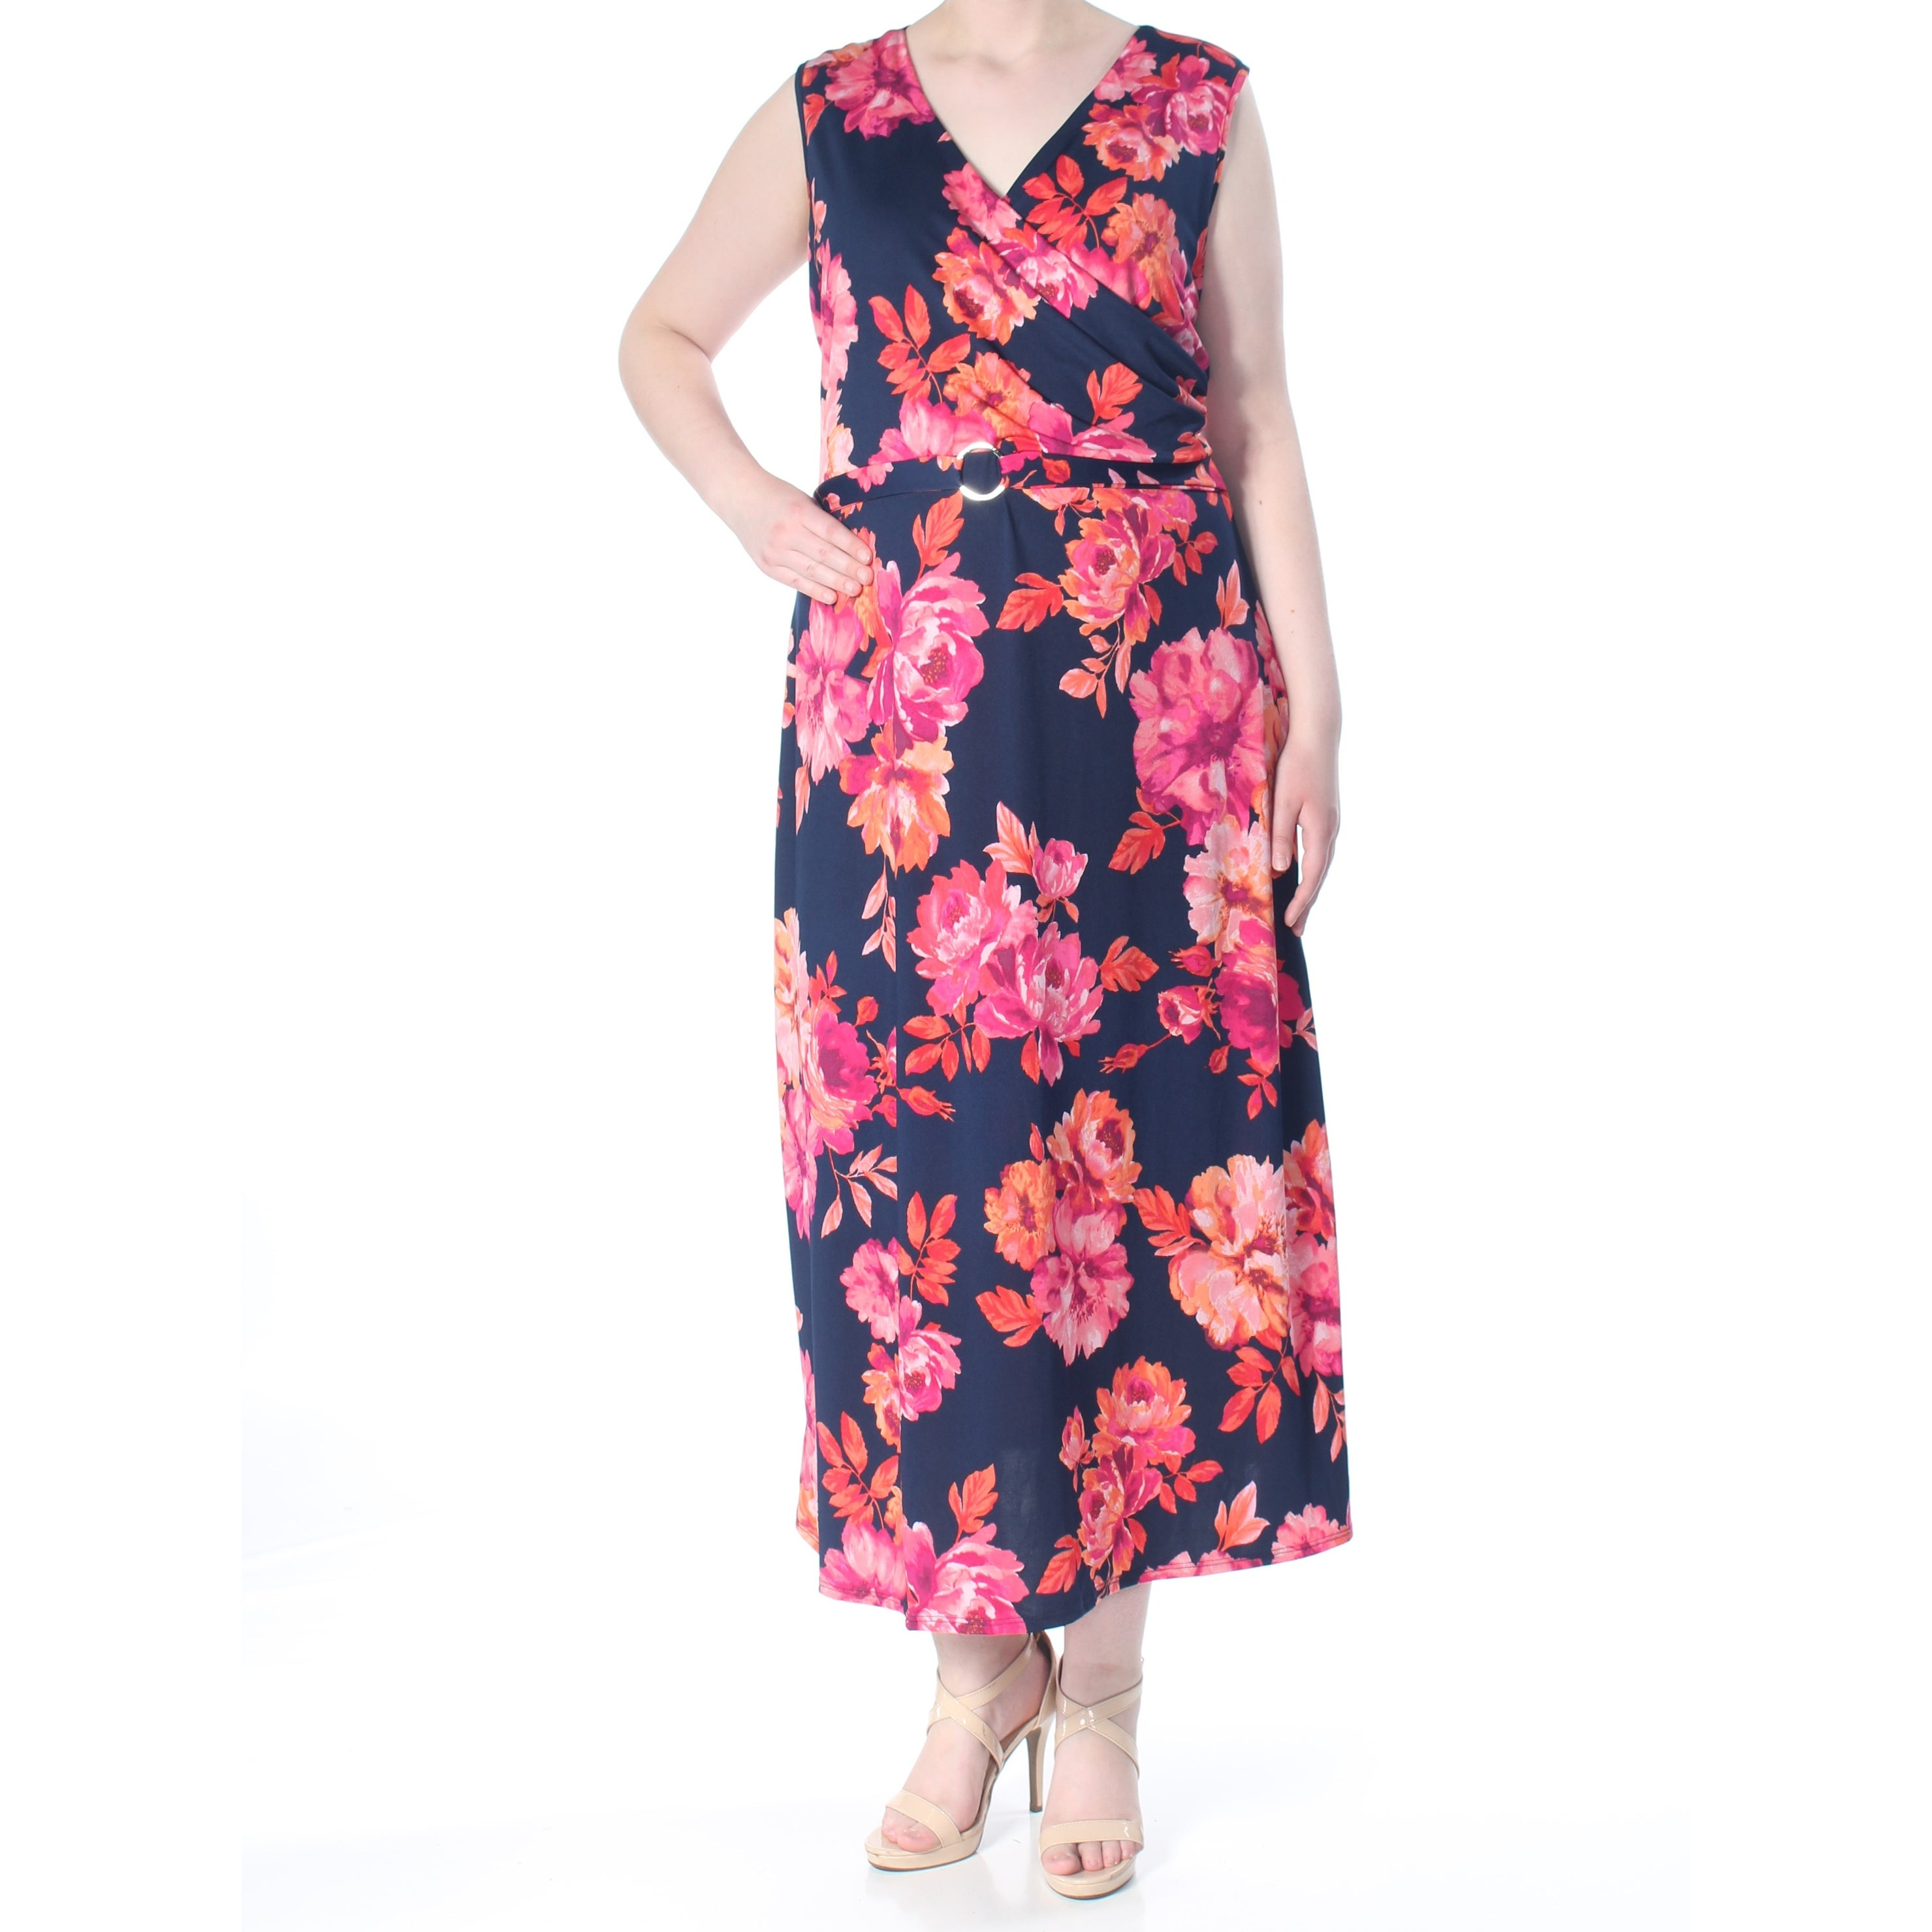 NY COLLECTION Womens Pink Floral Print Sleeveless Maxi Dress Plus Size: 2X